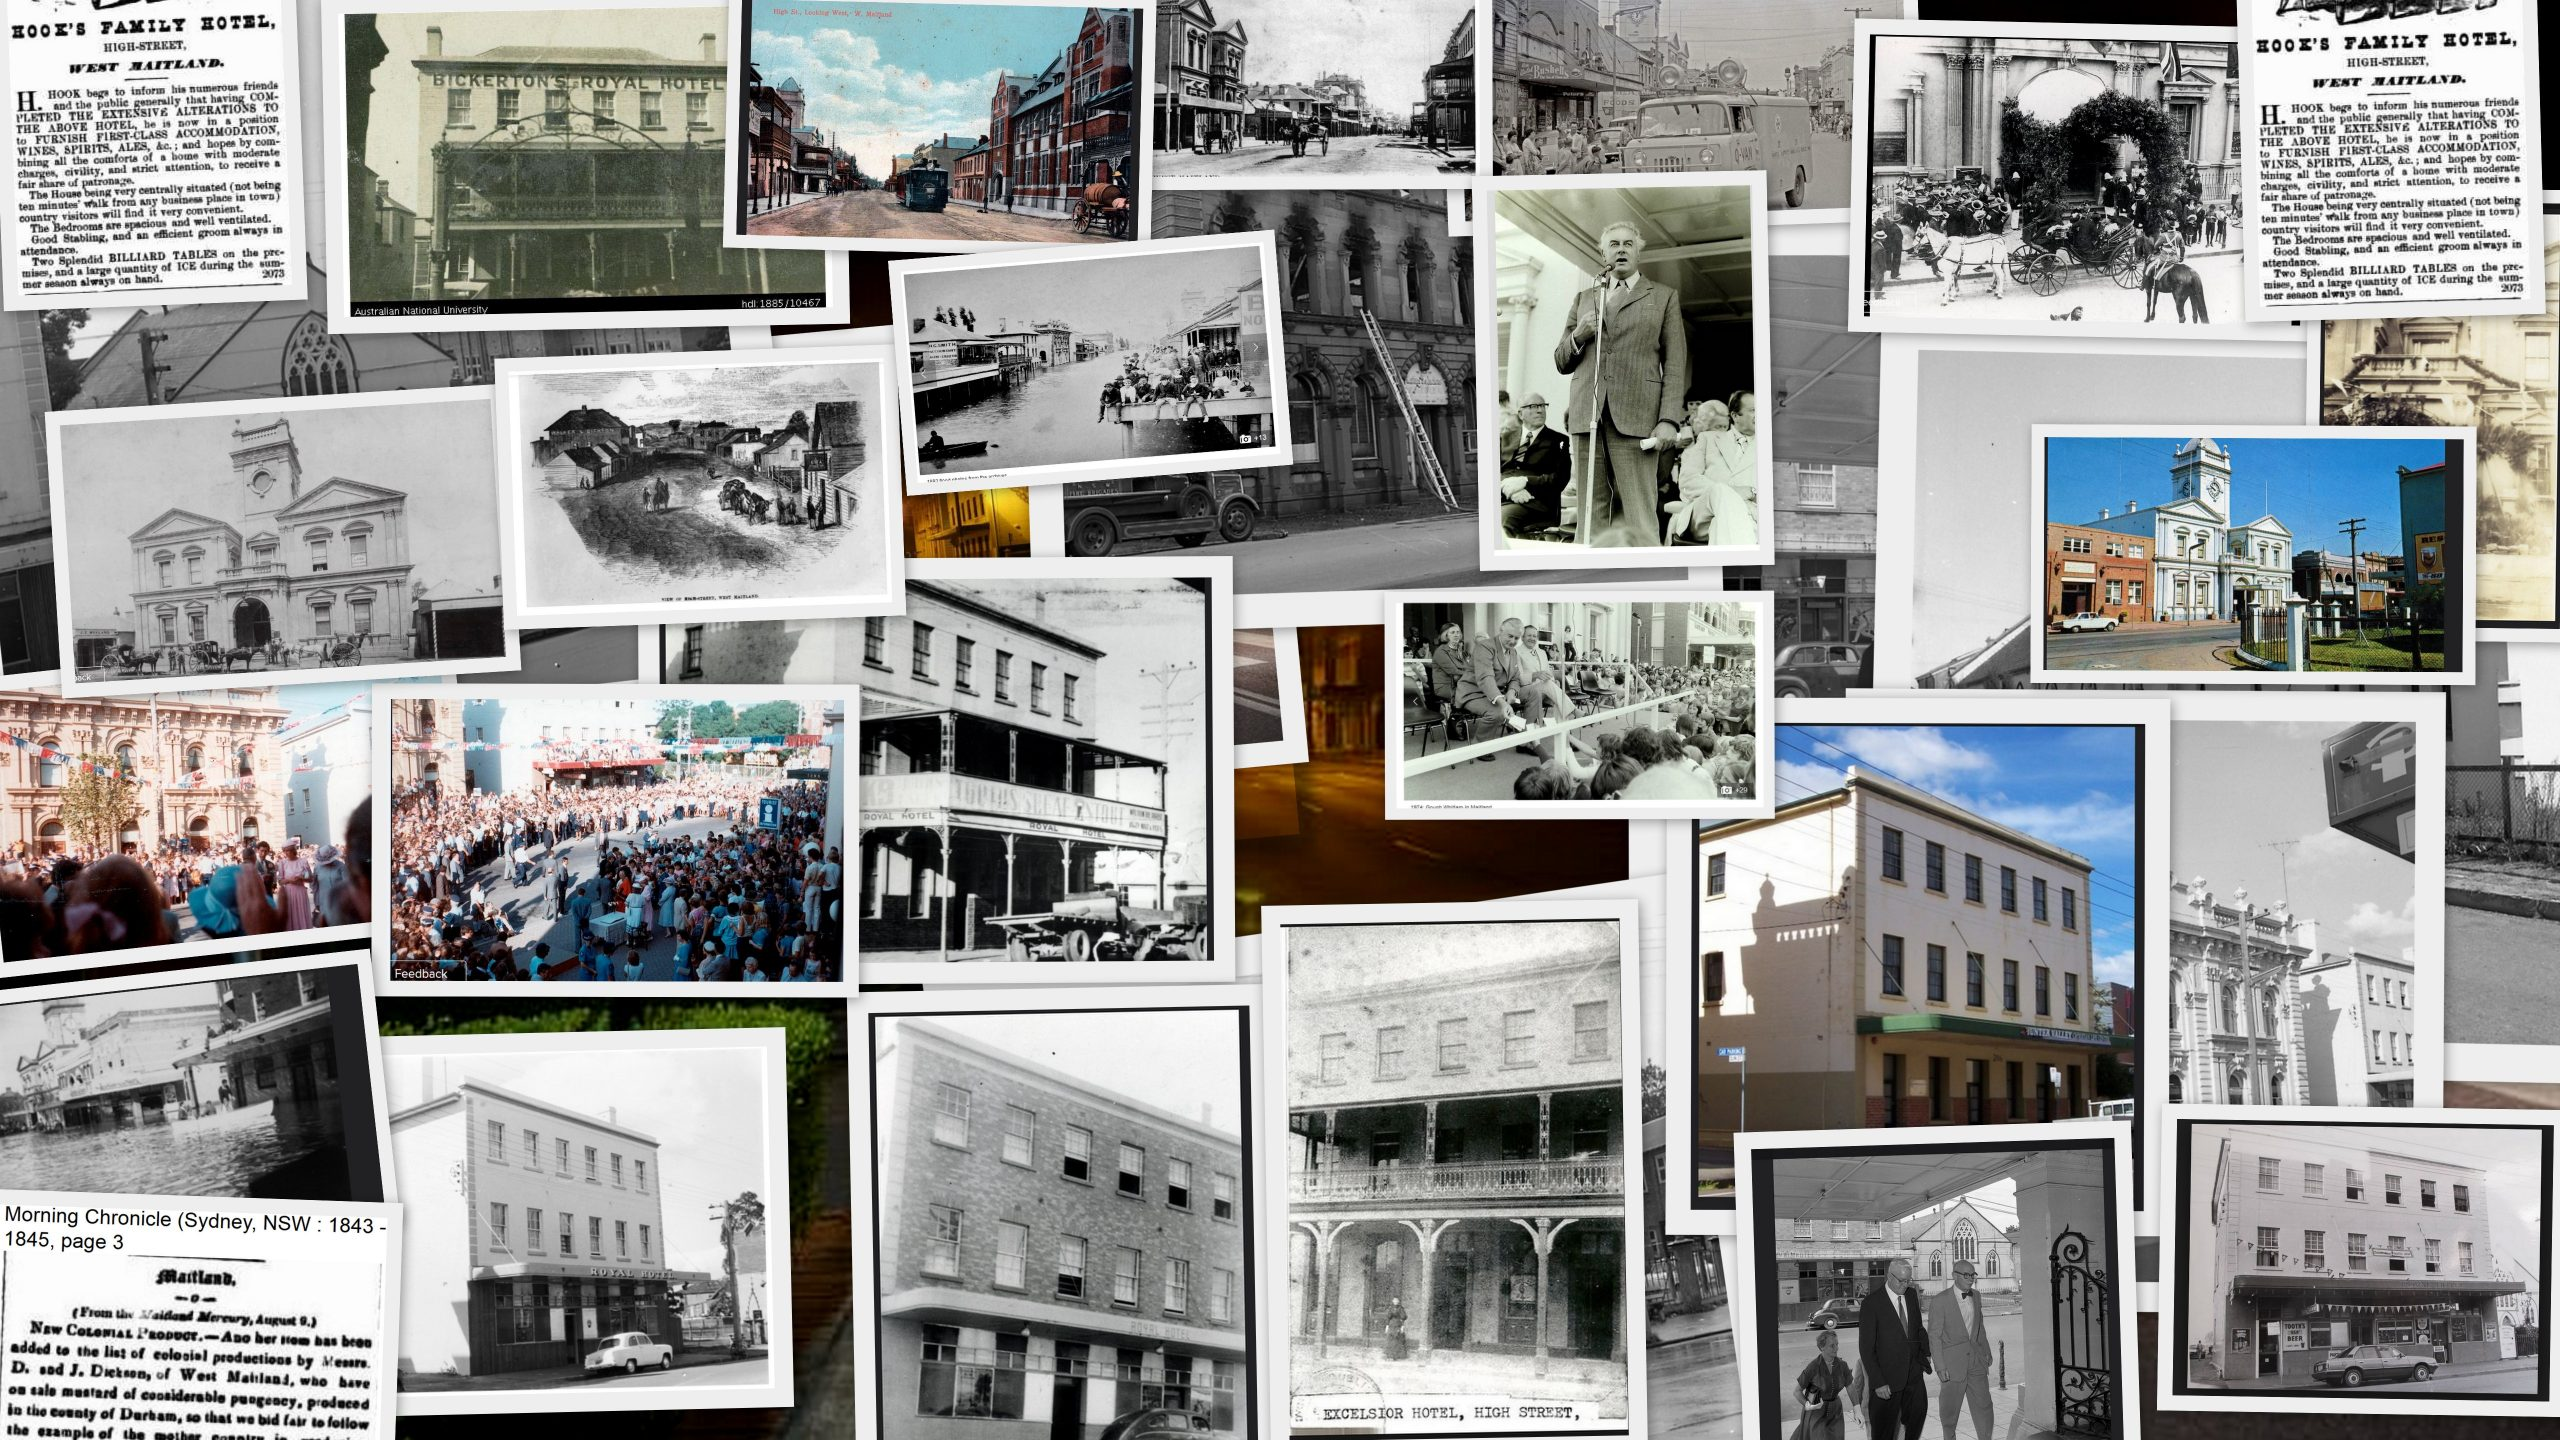 246 high st collage